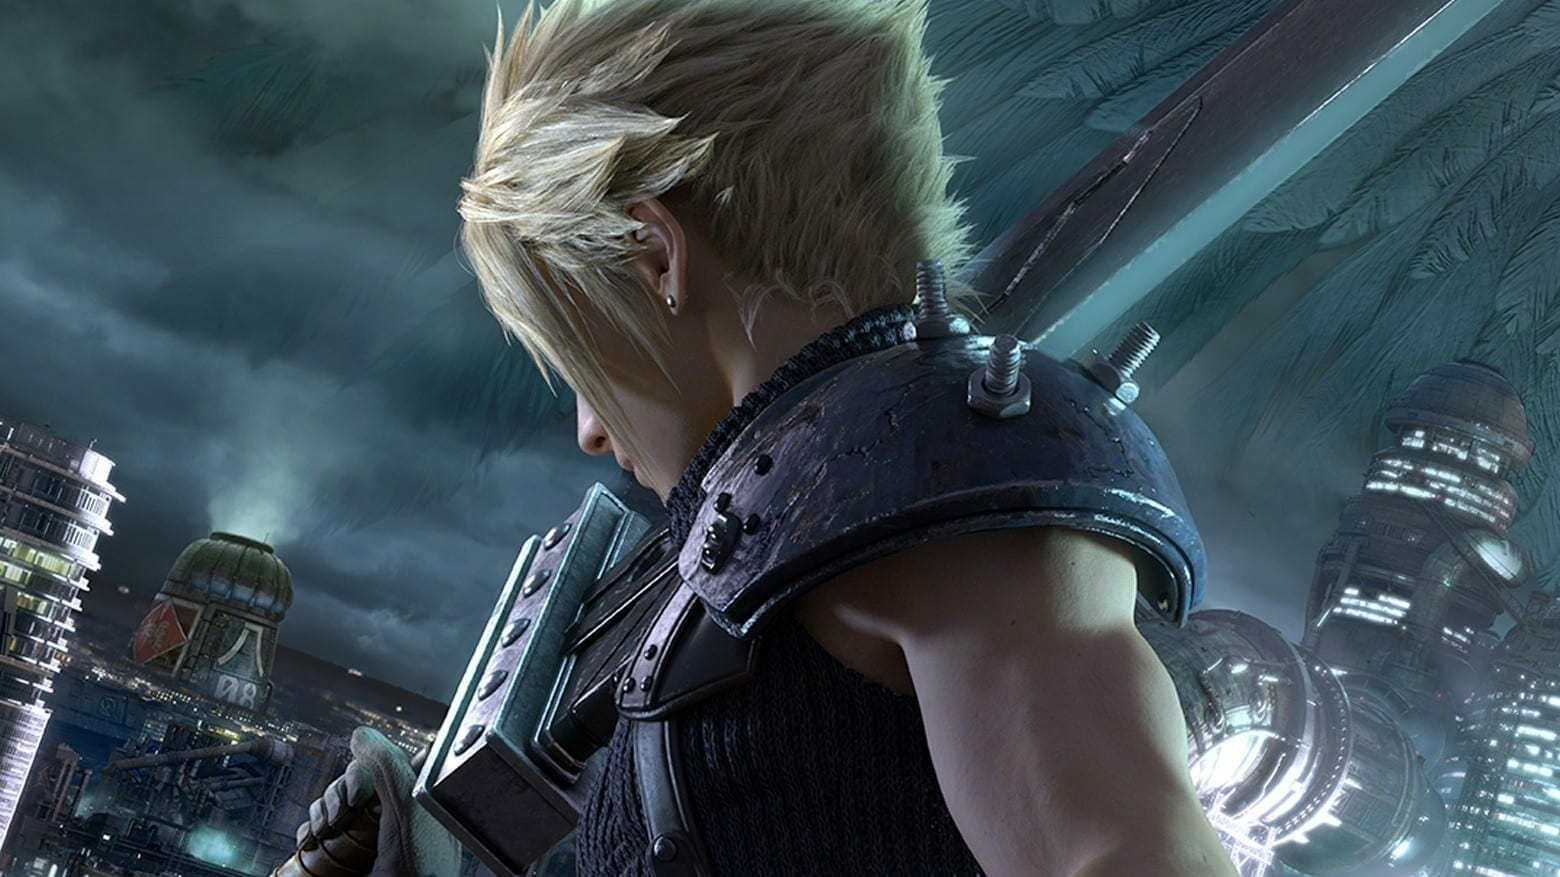 Xbox Final Fantasy VII Remake for Xbox One